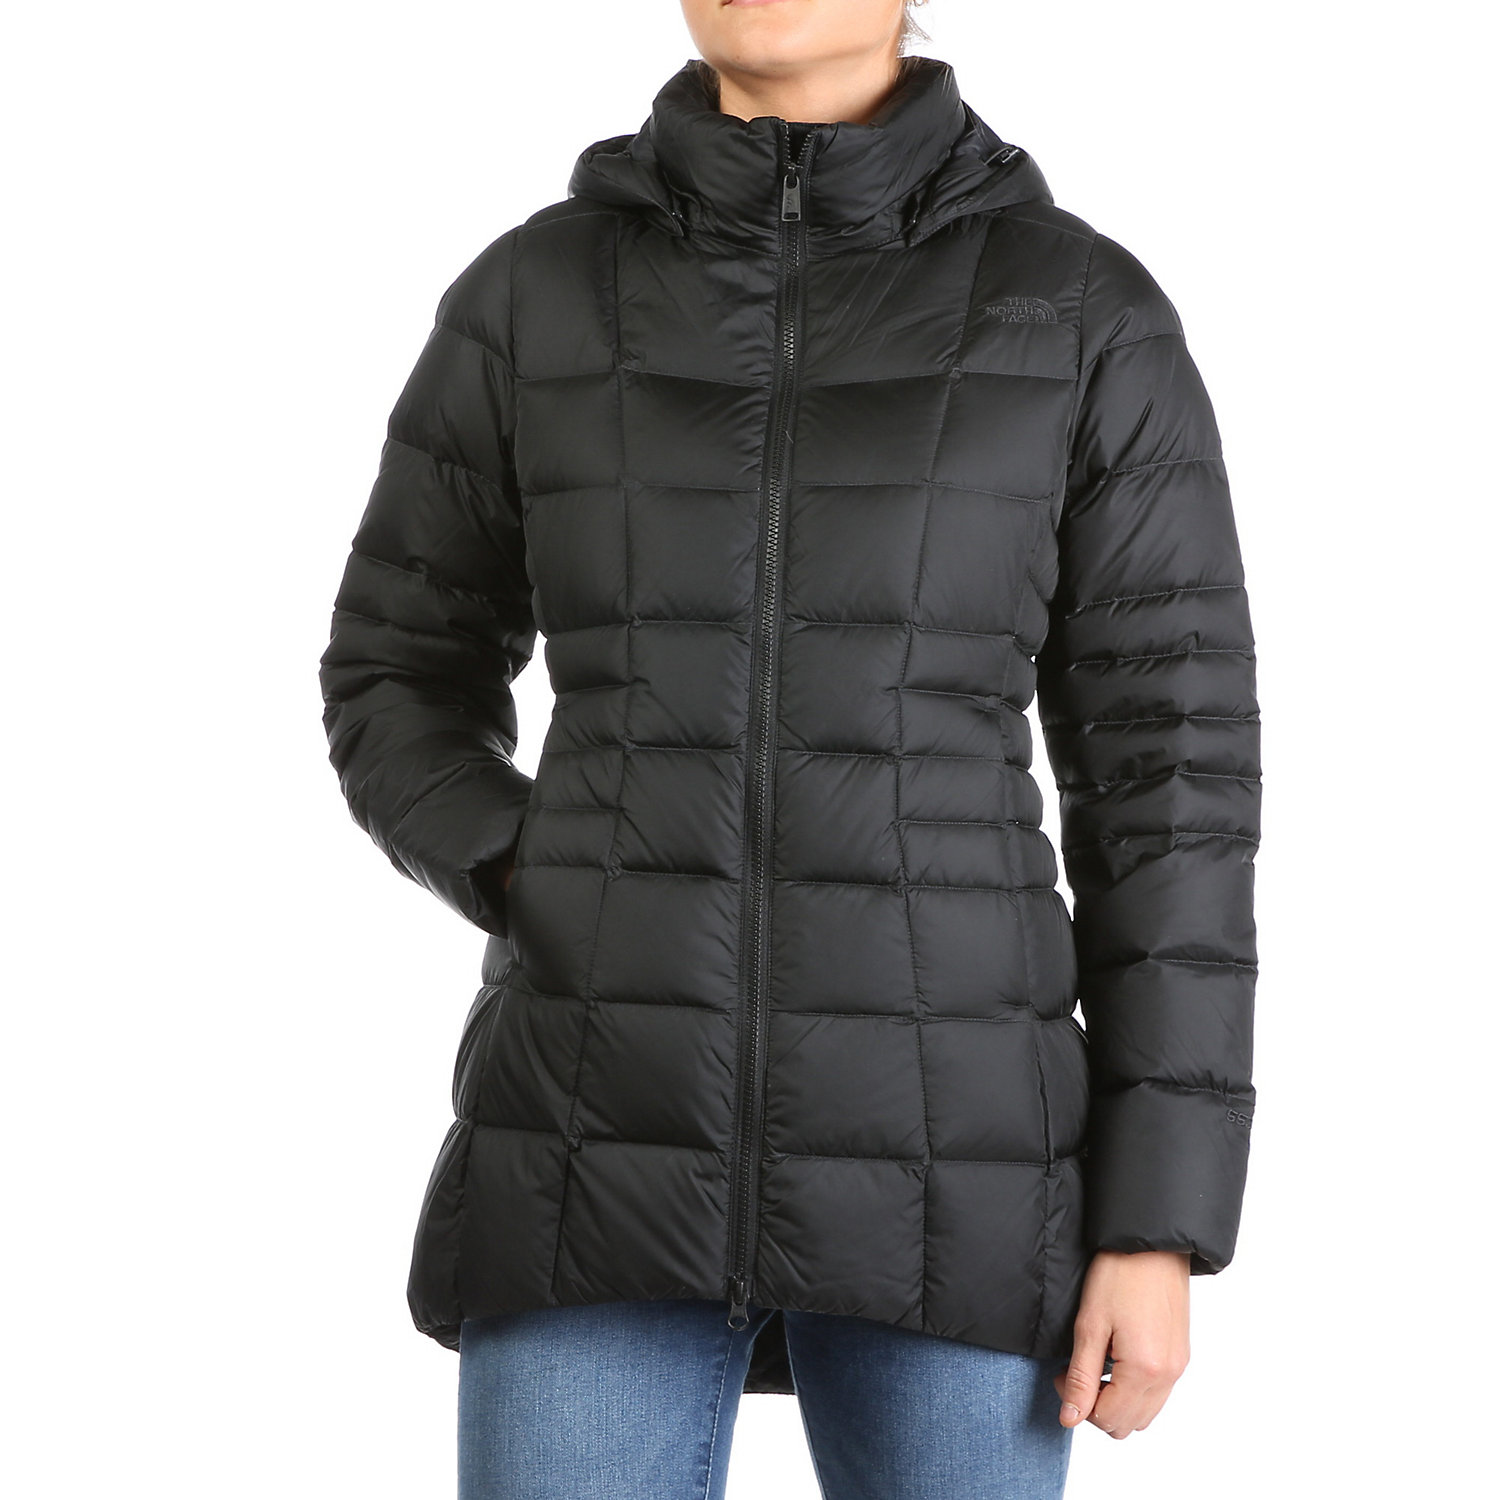 31f429a88 The North Face Women's Transit II Jacket